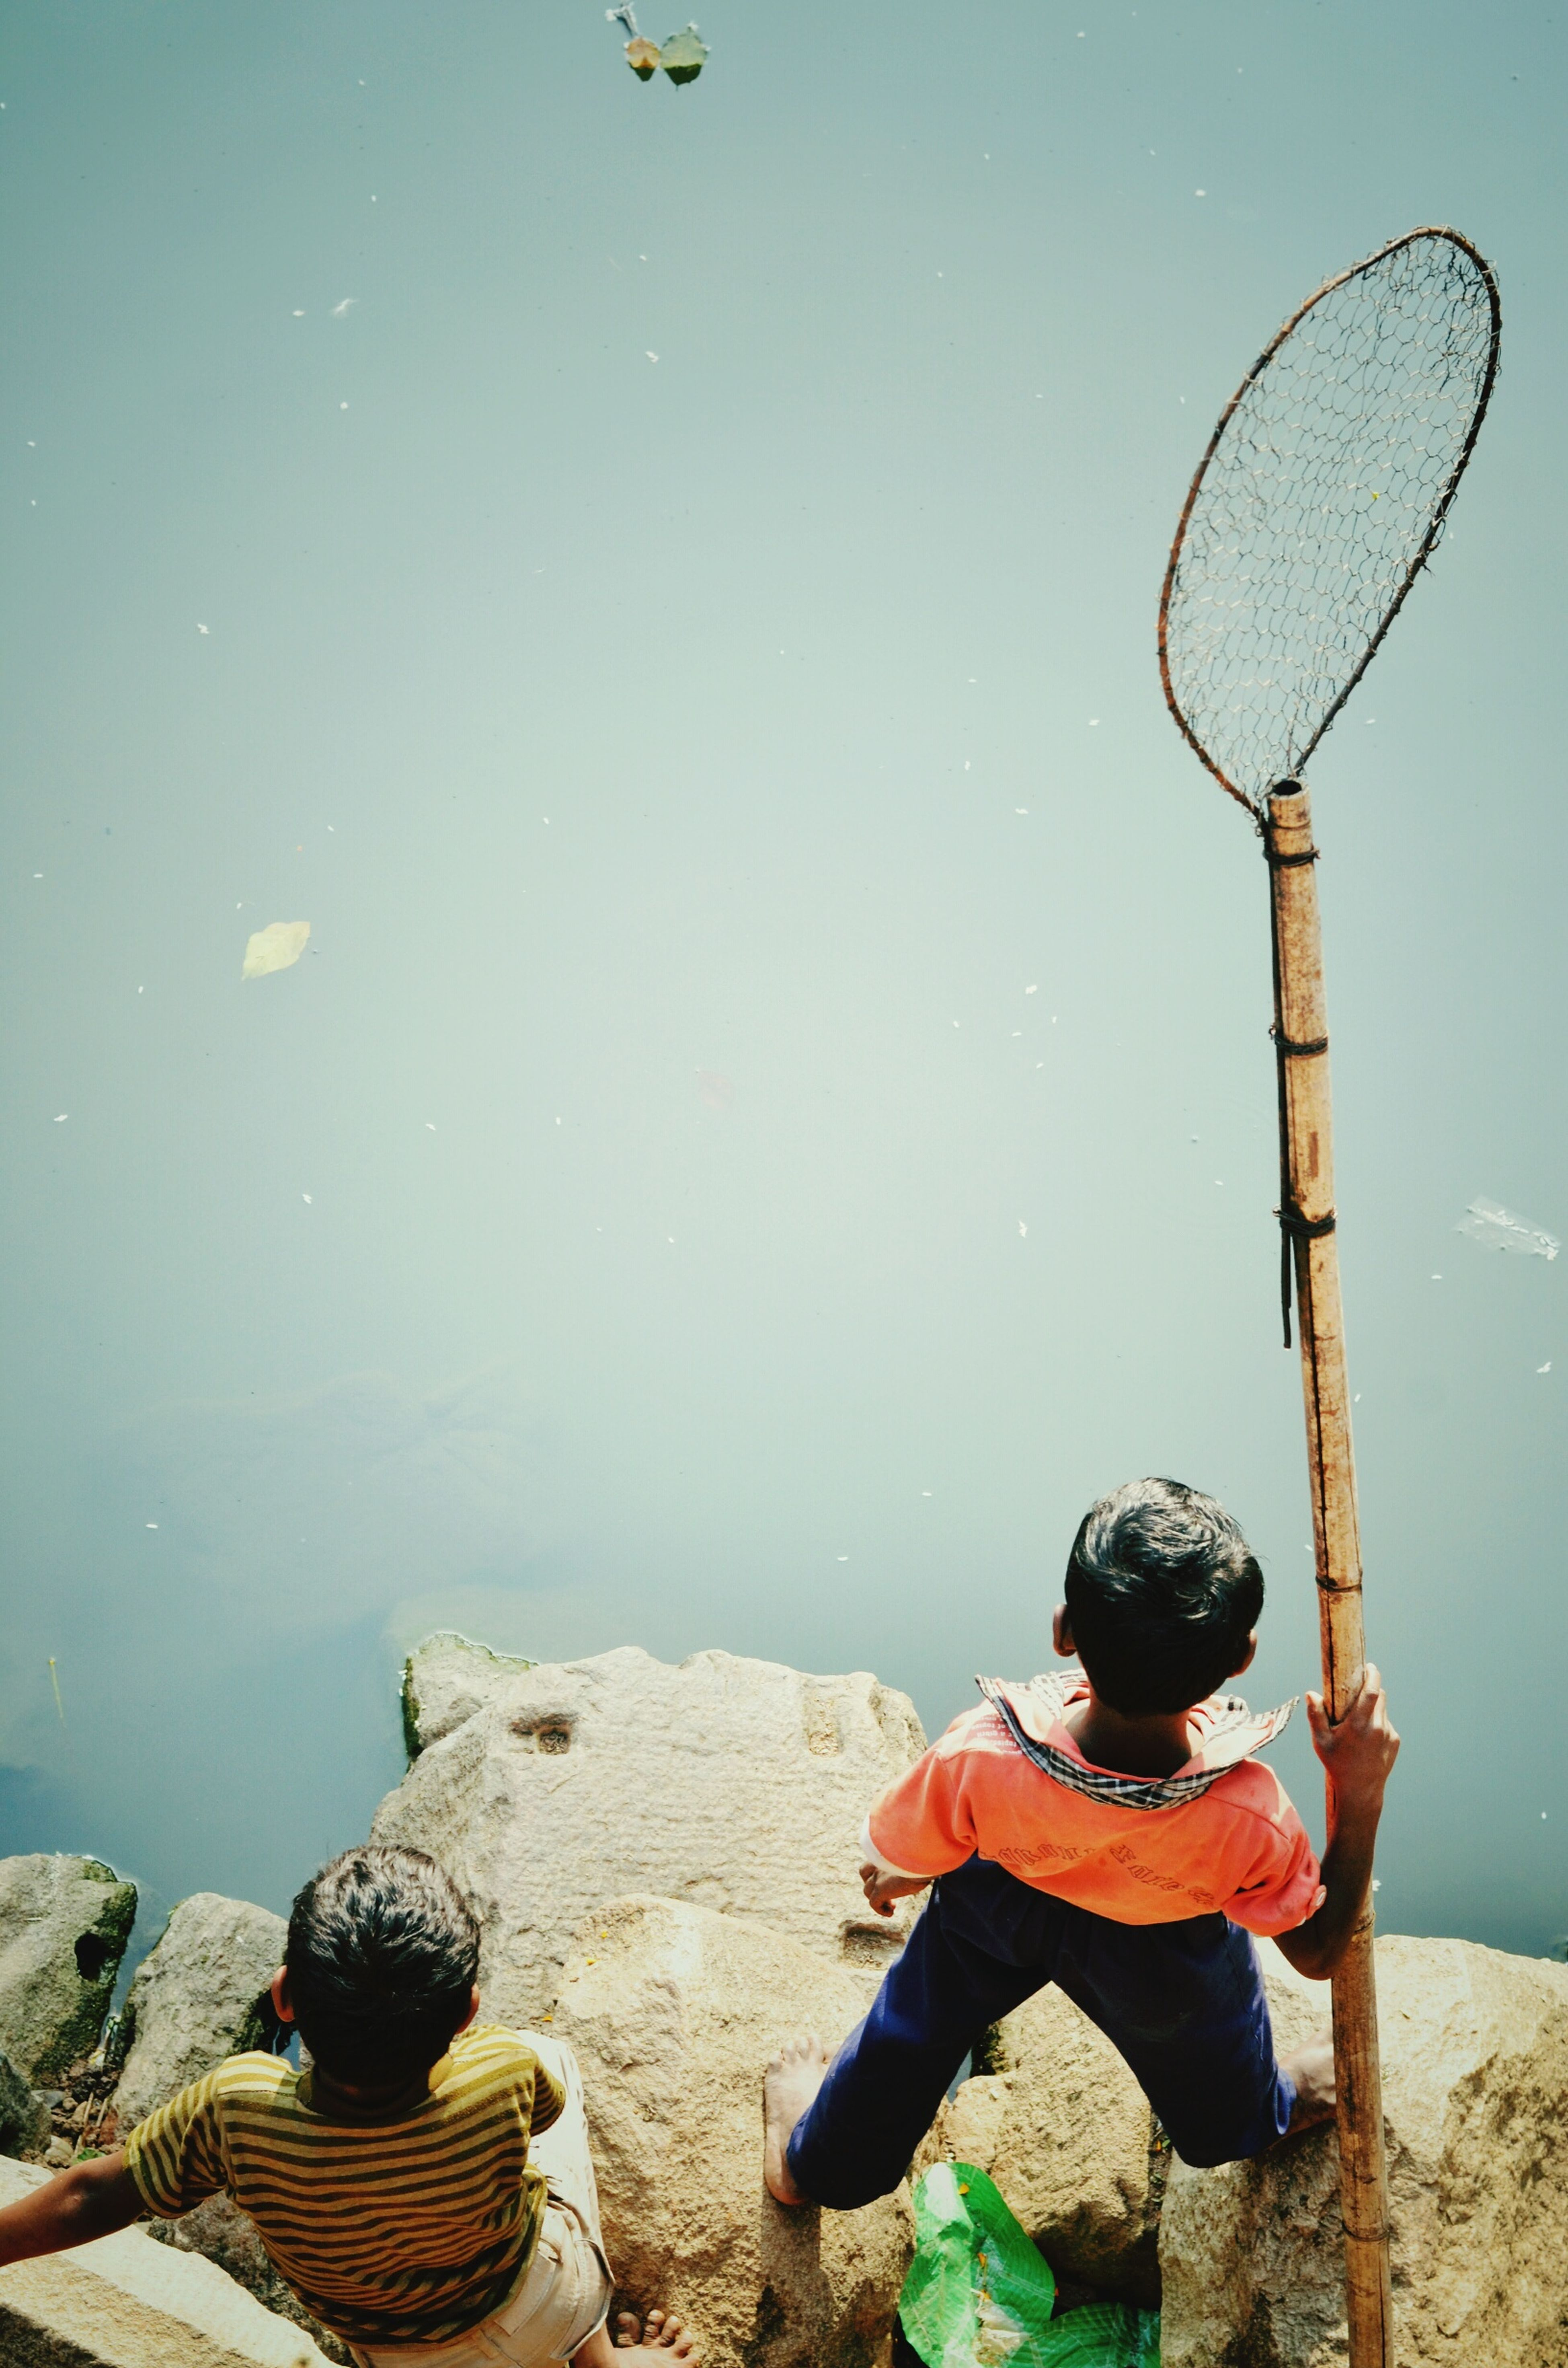 The Hunt . Wild Nature Children Fishing Net Fish Colours Hoddy First Eyeem Photo India_gram Fishing Friend Childhood Friend Nostalgicmoments Escape From Reality